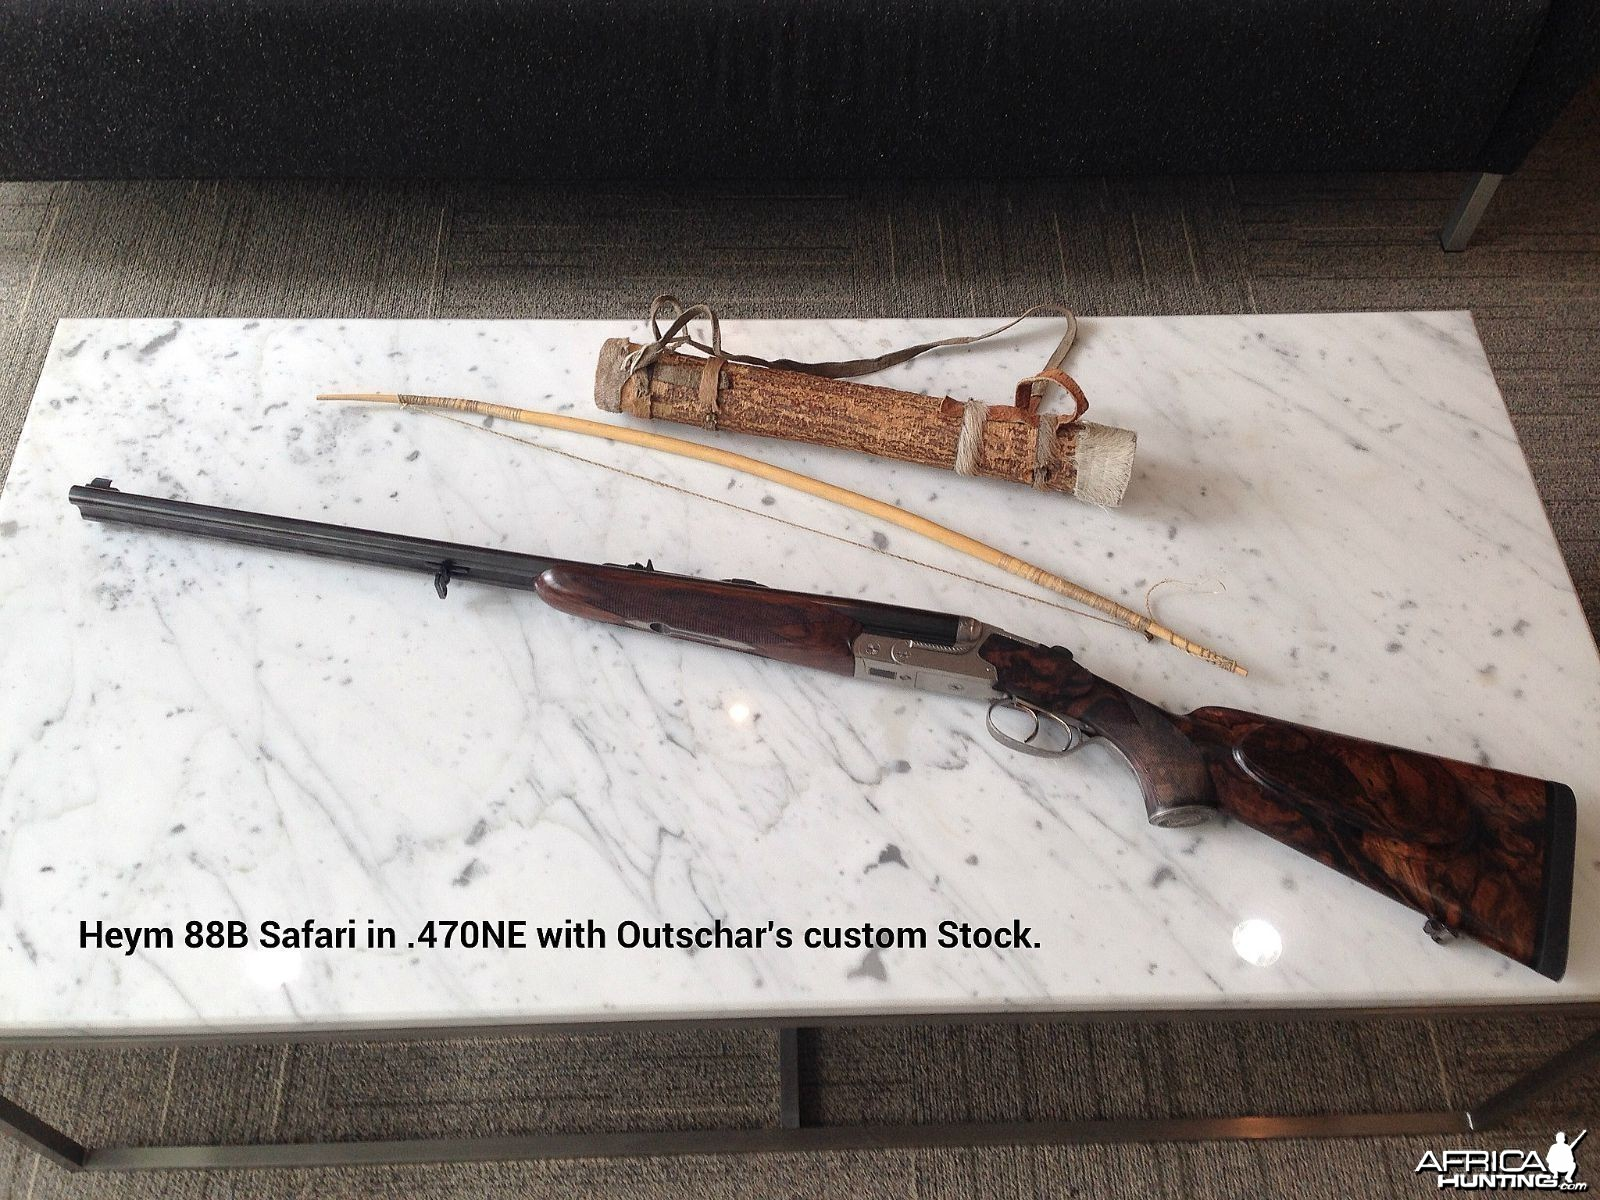 Heym 88B Safari in .470NE with Outschar's Custom Stock